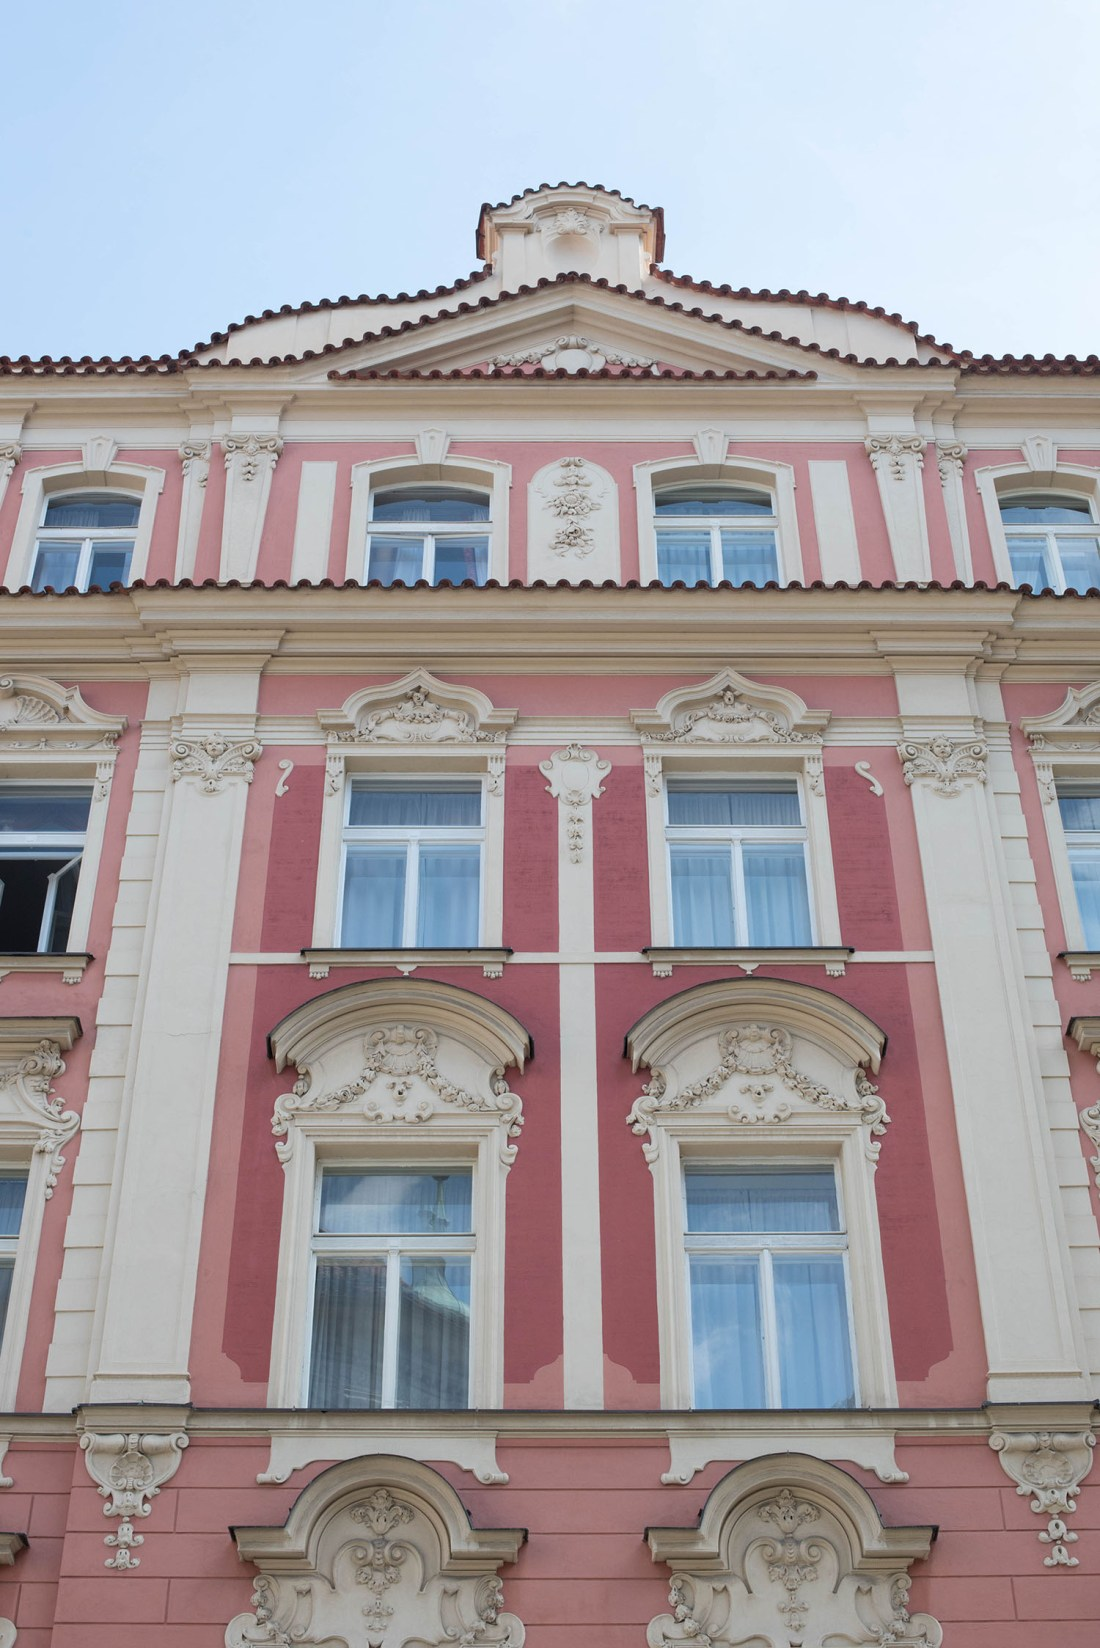 Pink and cream building in the old town of Prague, photographed by travel blogger Cee Fardoe of Coco & Vera